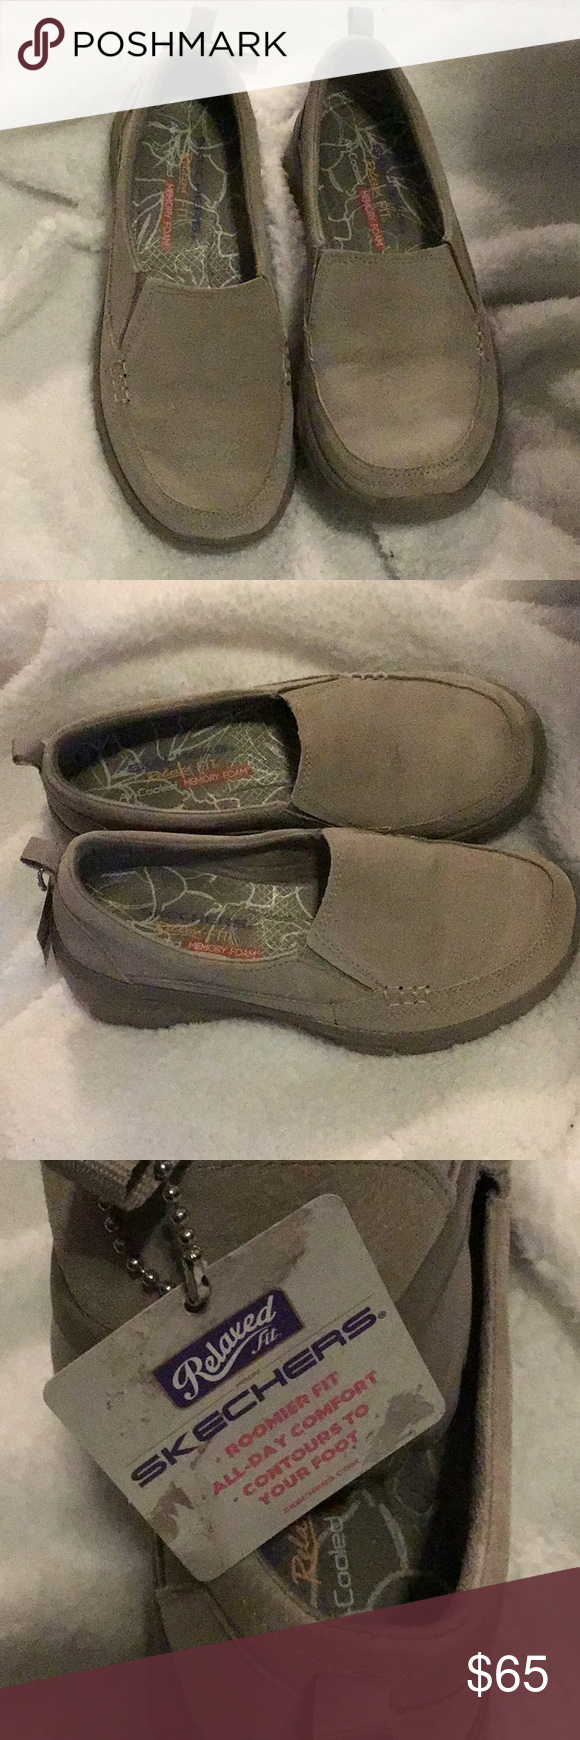 Skechers Air Cooled Memory Foam shoes 7.5 Leather Leather